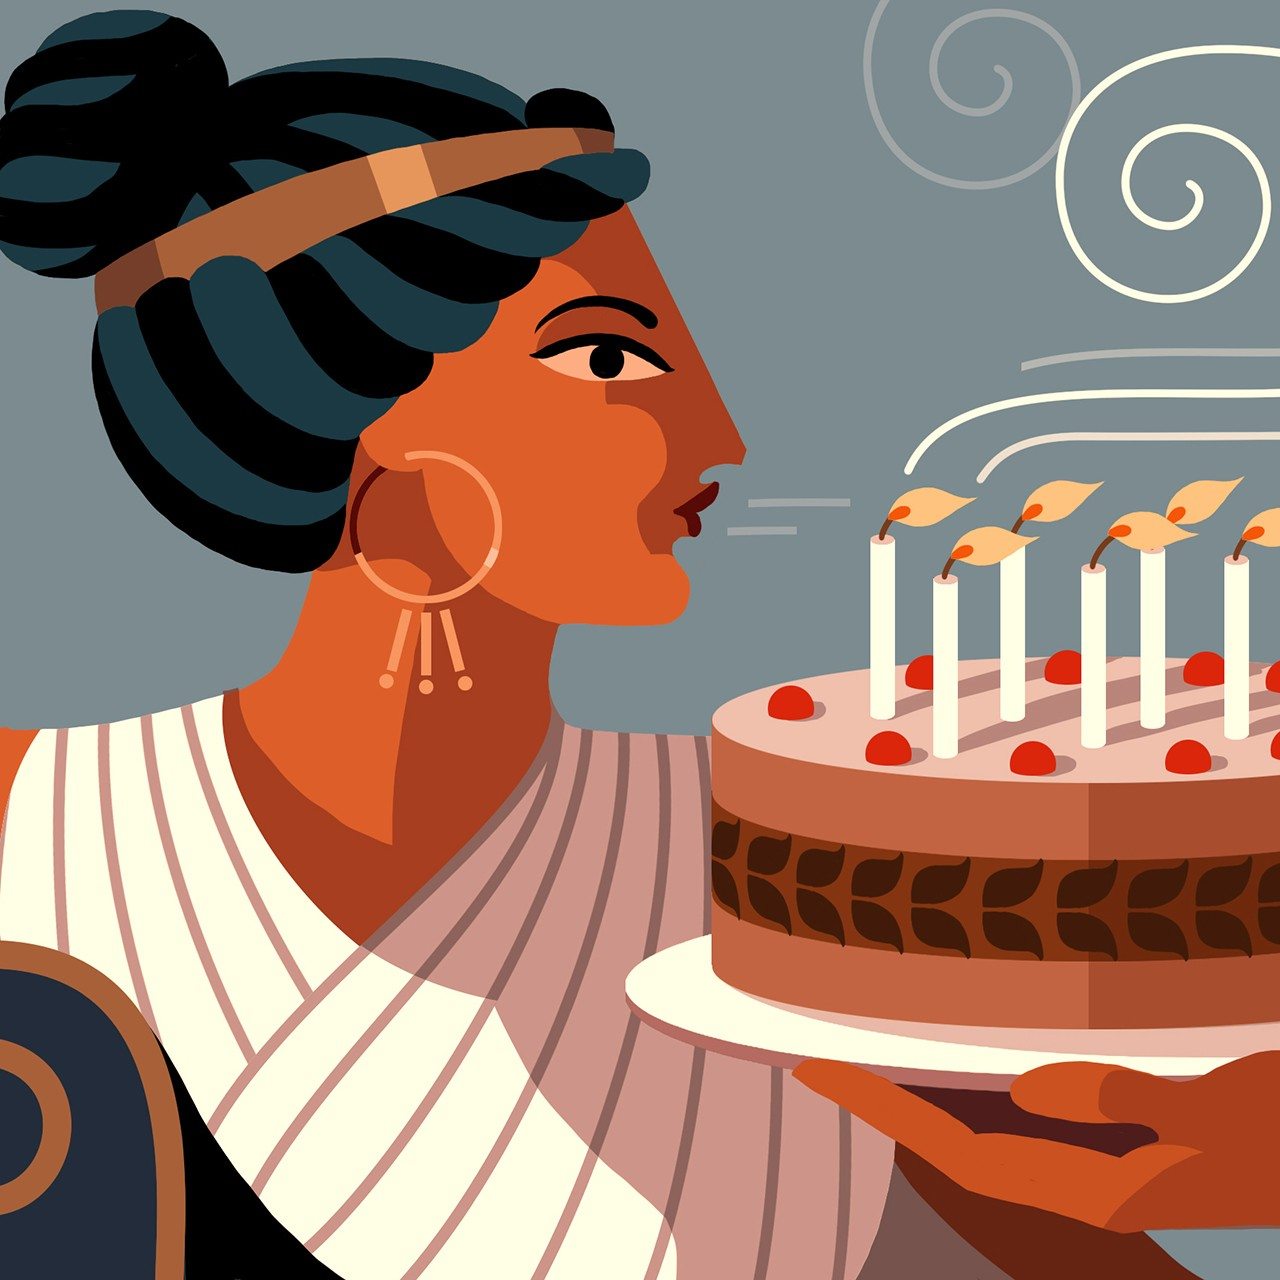 Globalisation Created Birthday Parties The Pandemic Killed Them The Economist